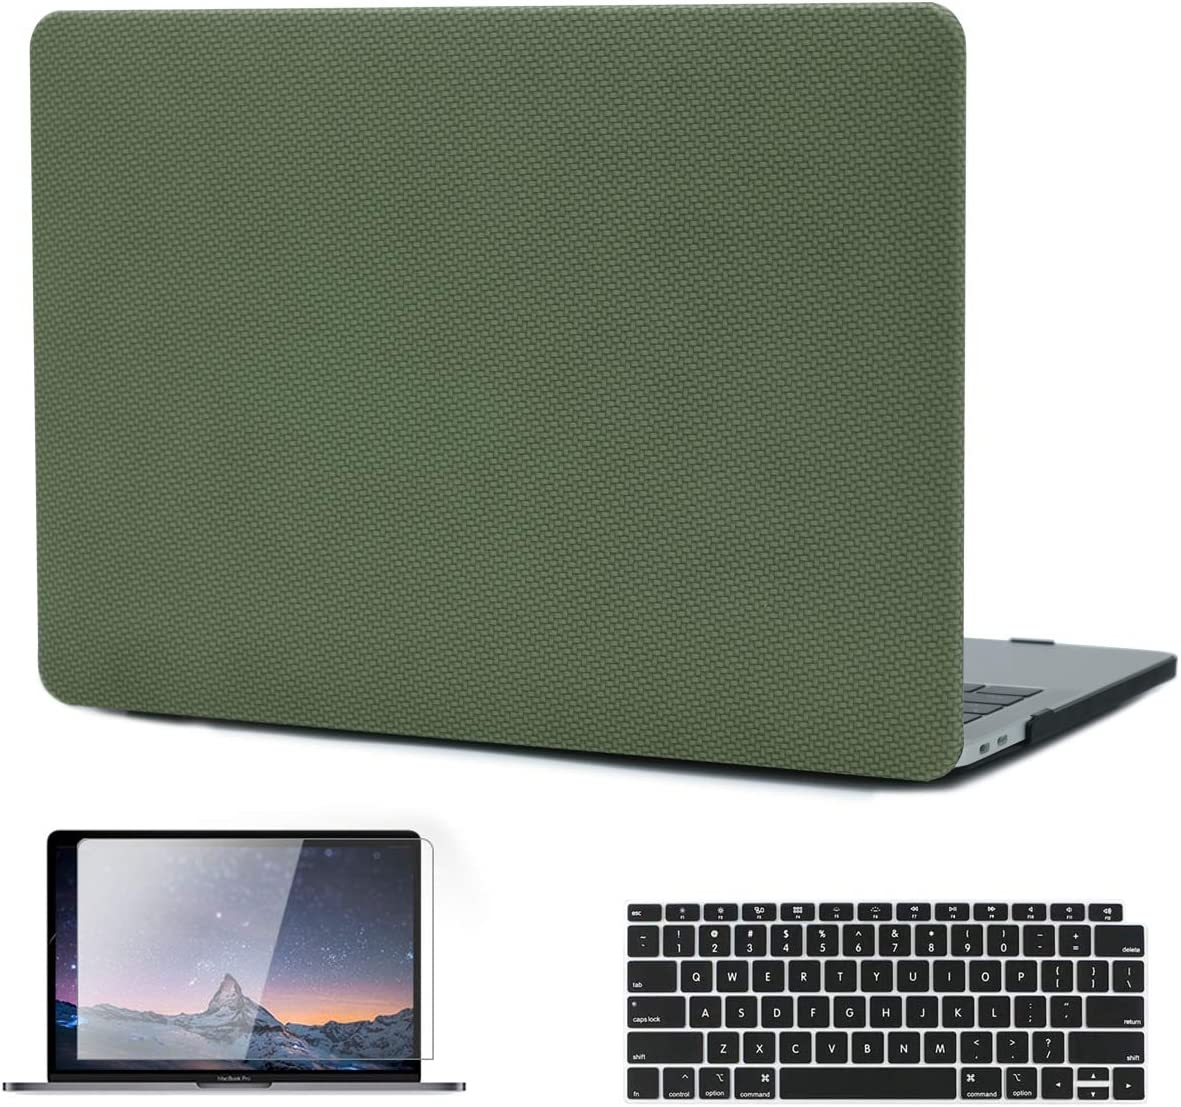 MacBook Pro 13 inch Case 2019 2018 2017 2016 Release A2159 A1989 A1706 A1708, KKP Fabric-Like Leather Hard Shell Case Compatible with MacBook Pro 13 inch with/Without Touch Bar, Green